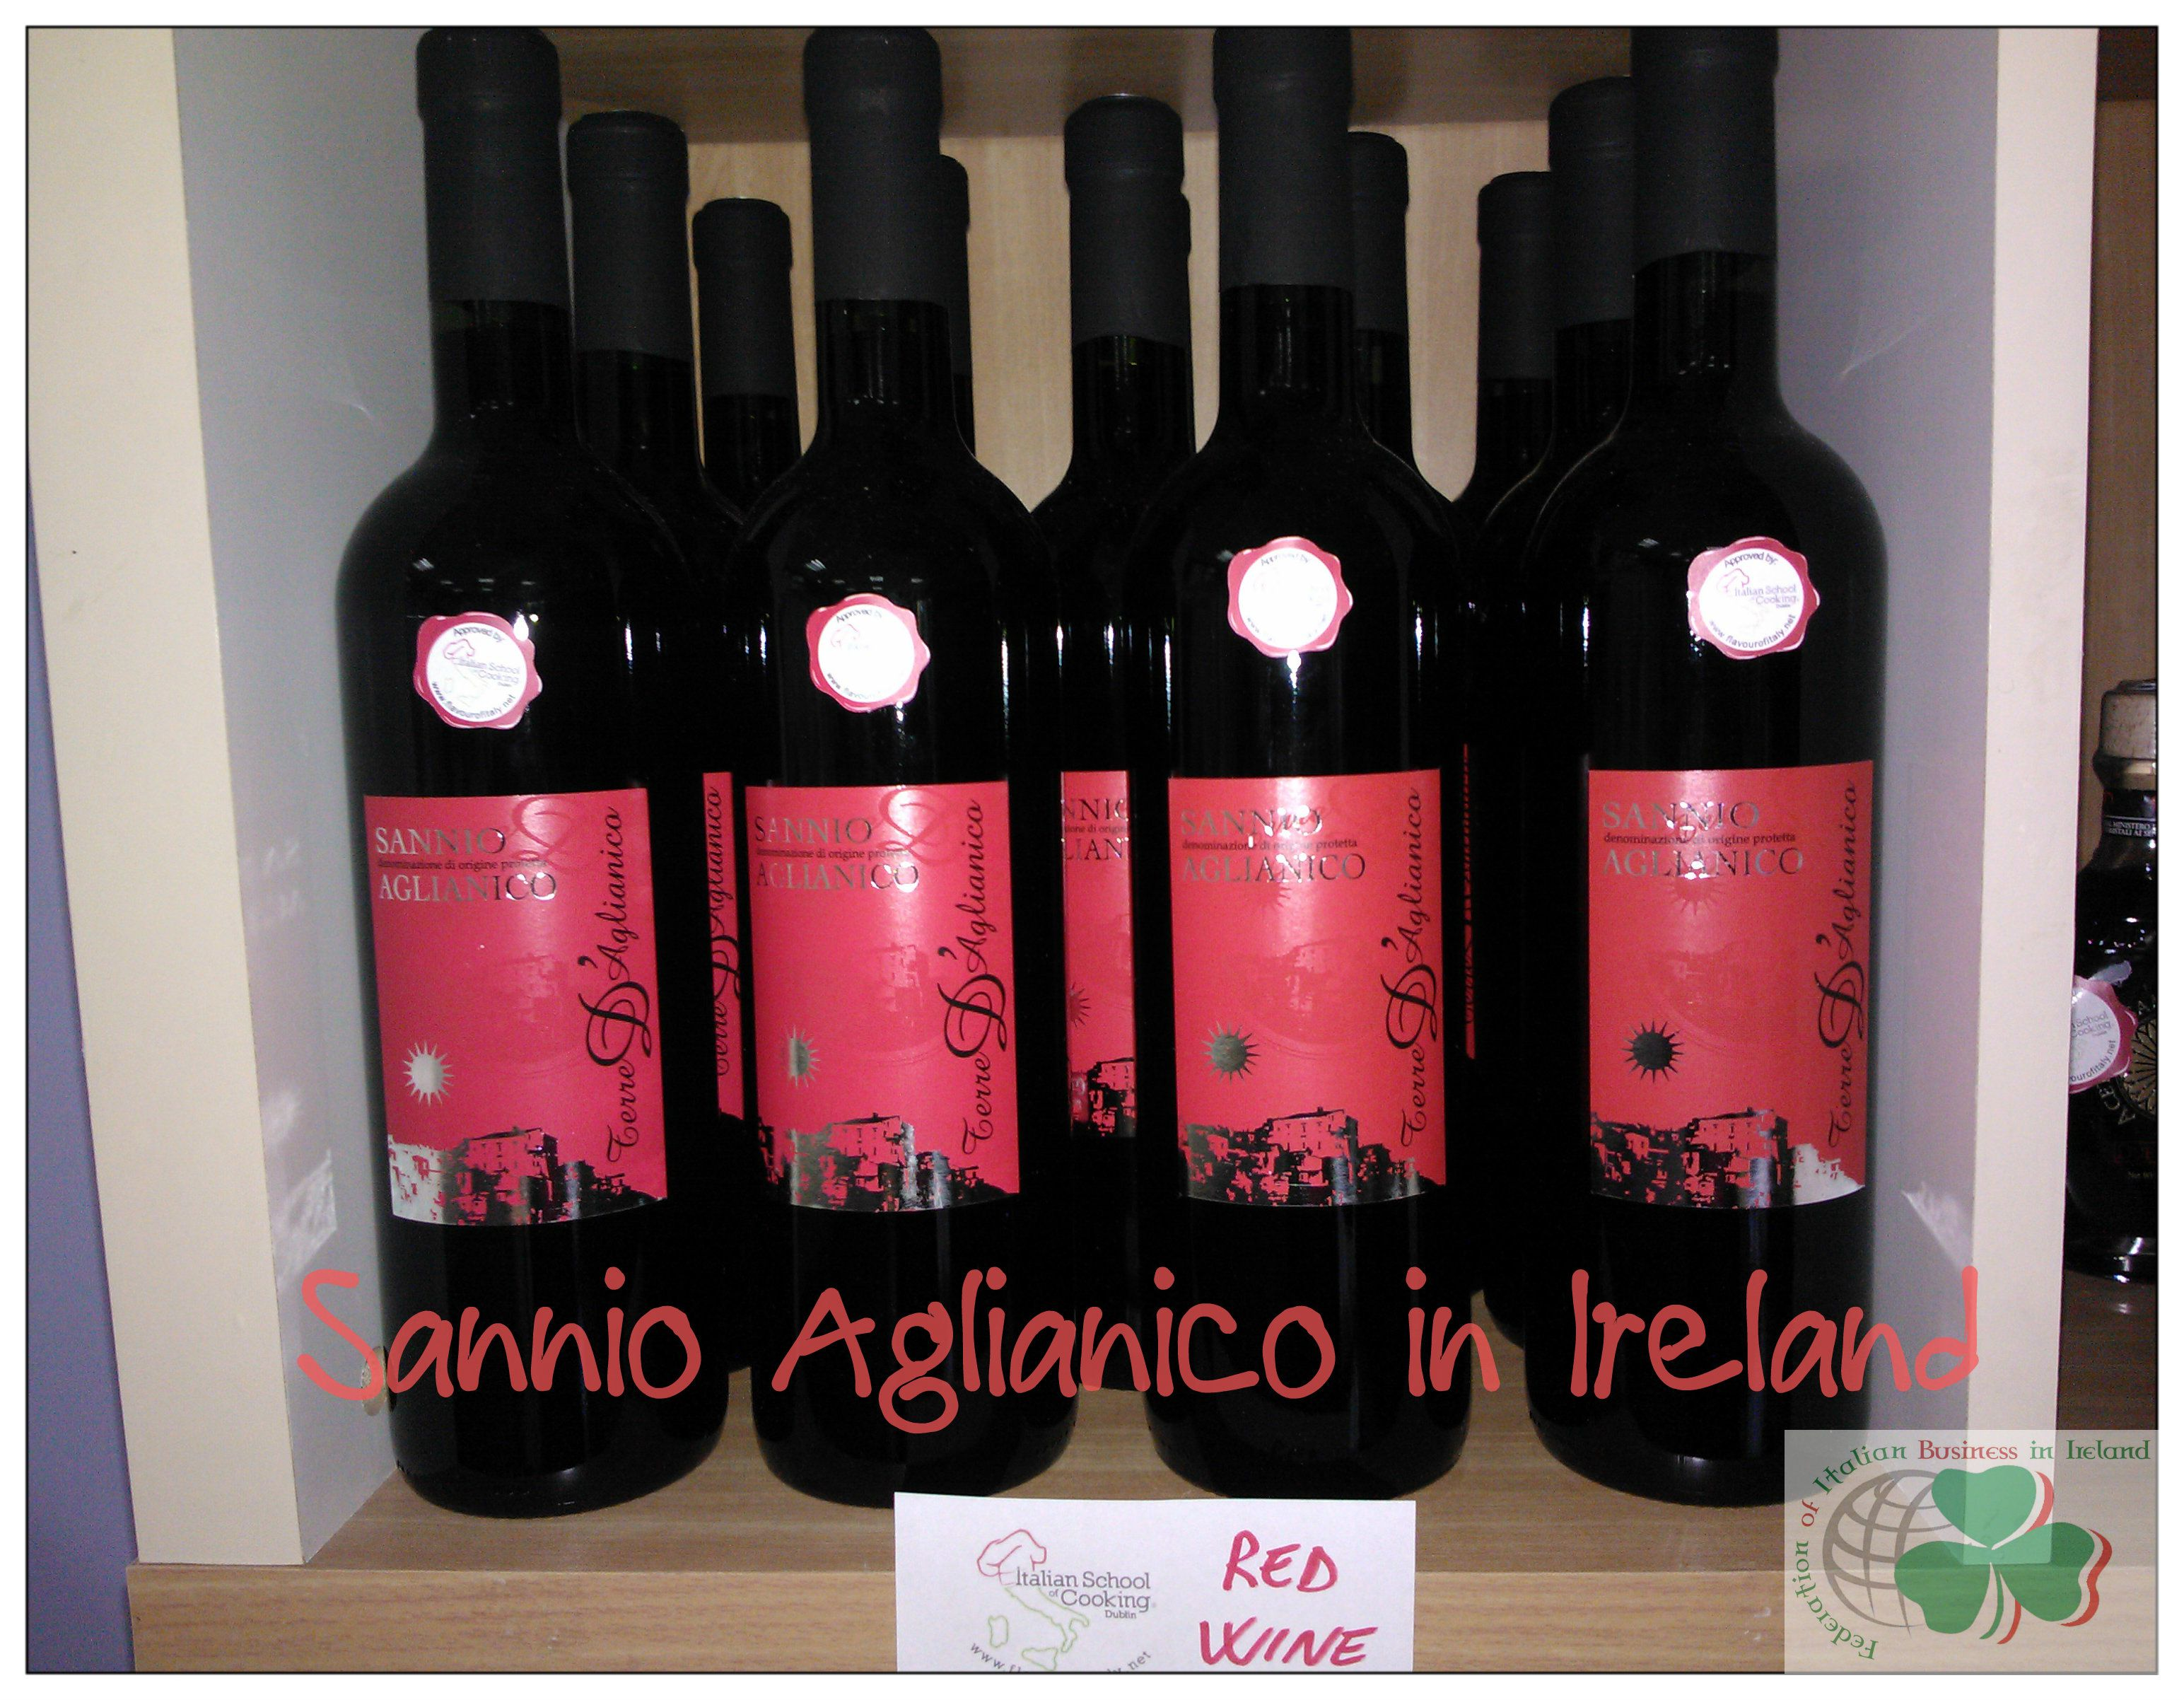 Red Wine Sannio Aglianico From Italy In Dublin Wine Red Wine Alcoholic Drinks